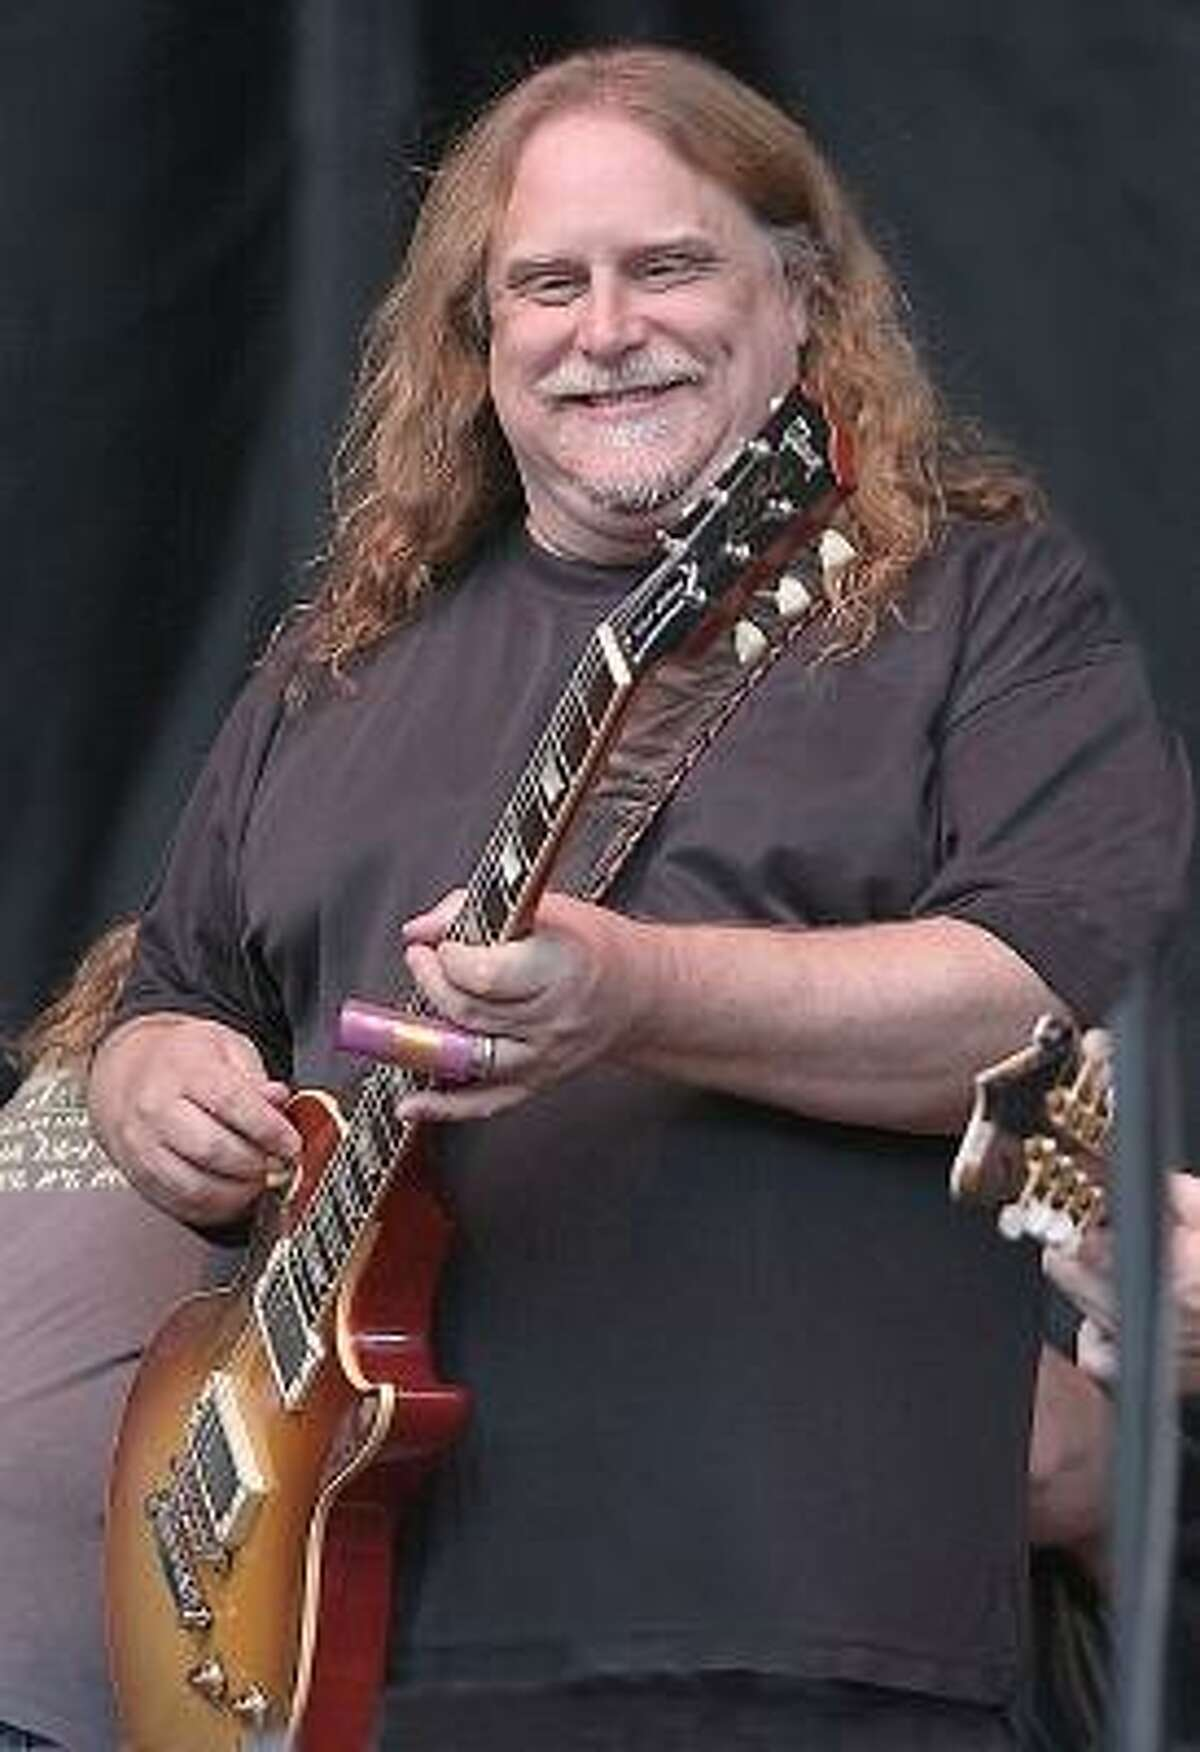 Guitarist, singer and songwriter Warren Haynes, founder of Gov't Mule and long time member of the Allman Brothers Band, is shown on stage performing during Mountain Jam in Hunter, New York.